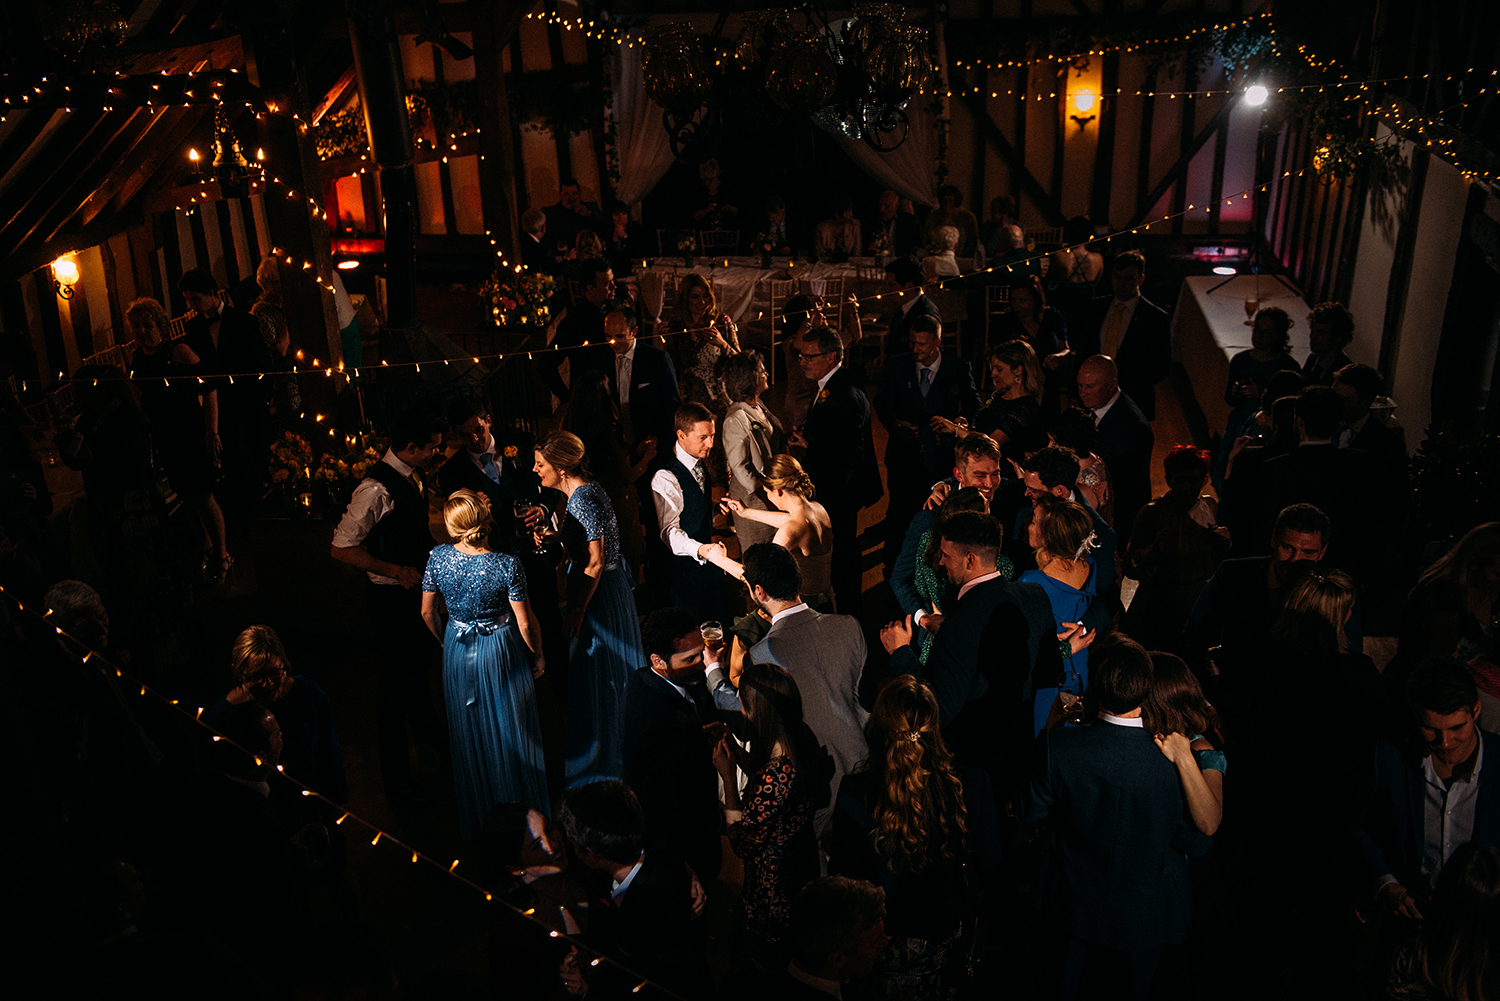 aerial shot of the full dance floor taken from the balcony with focus on the bride and groom